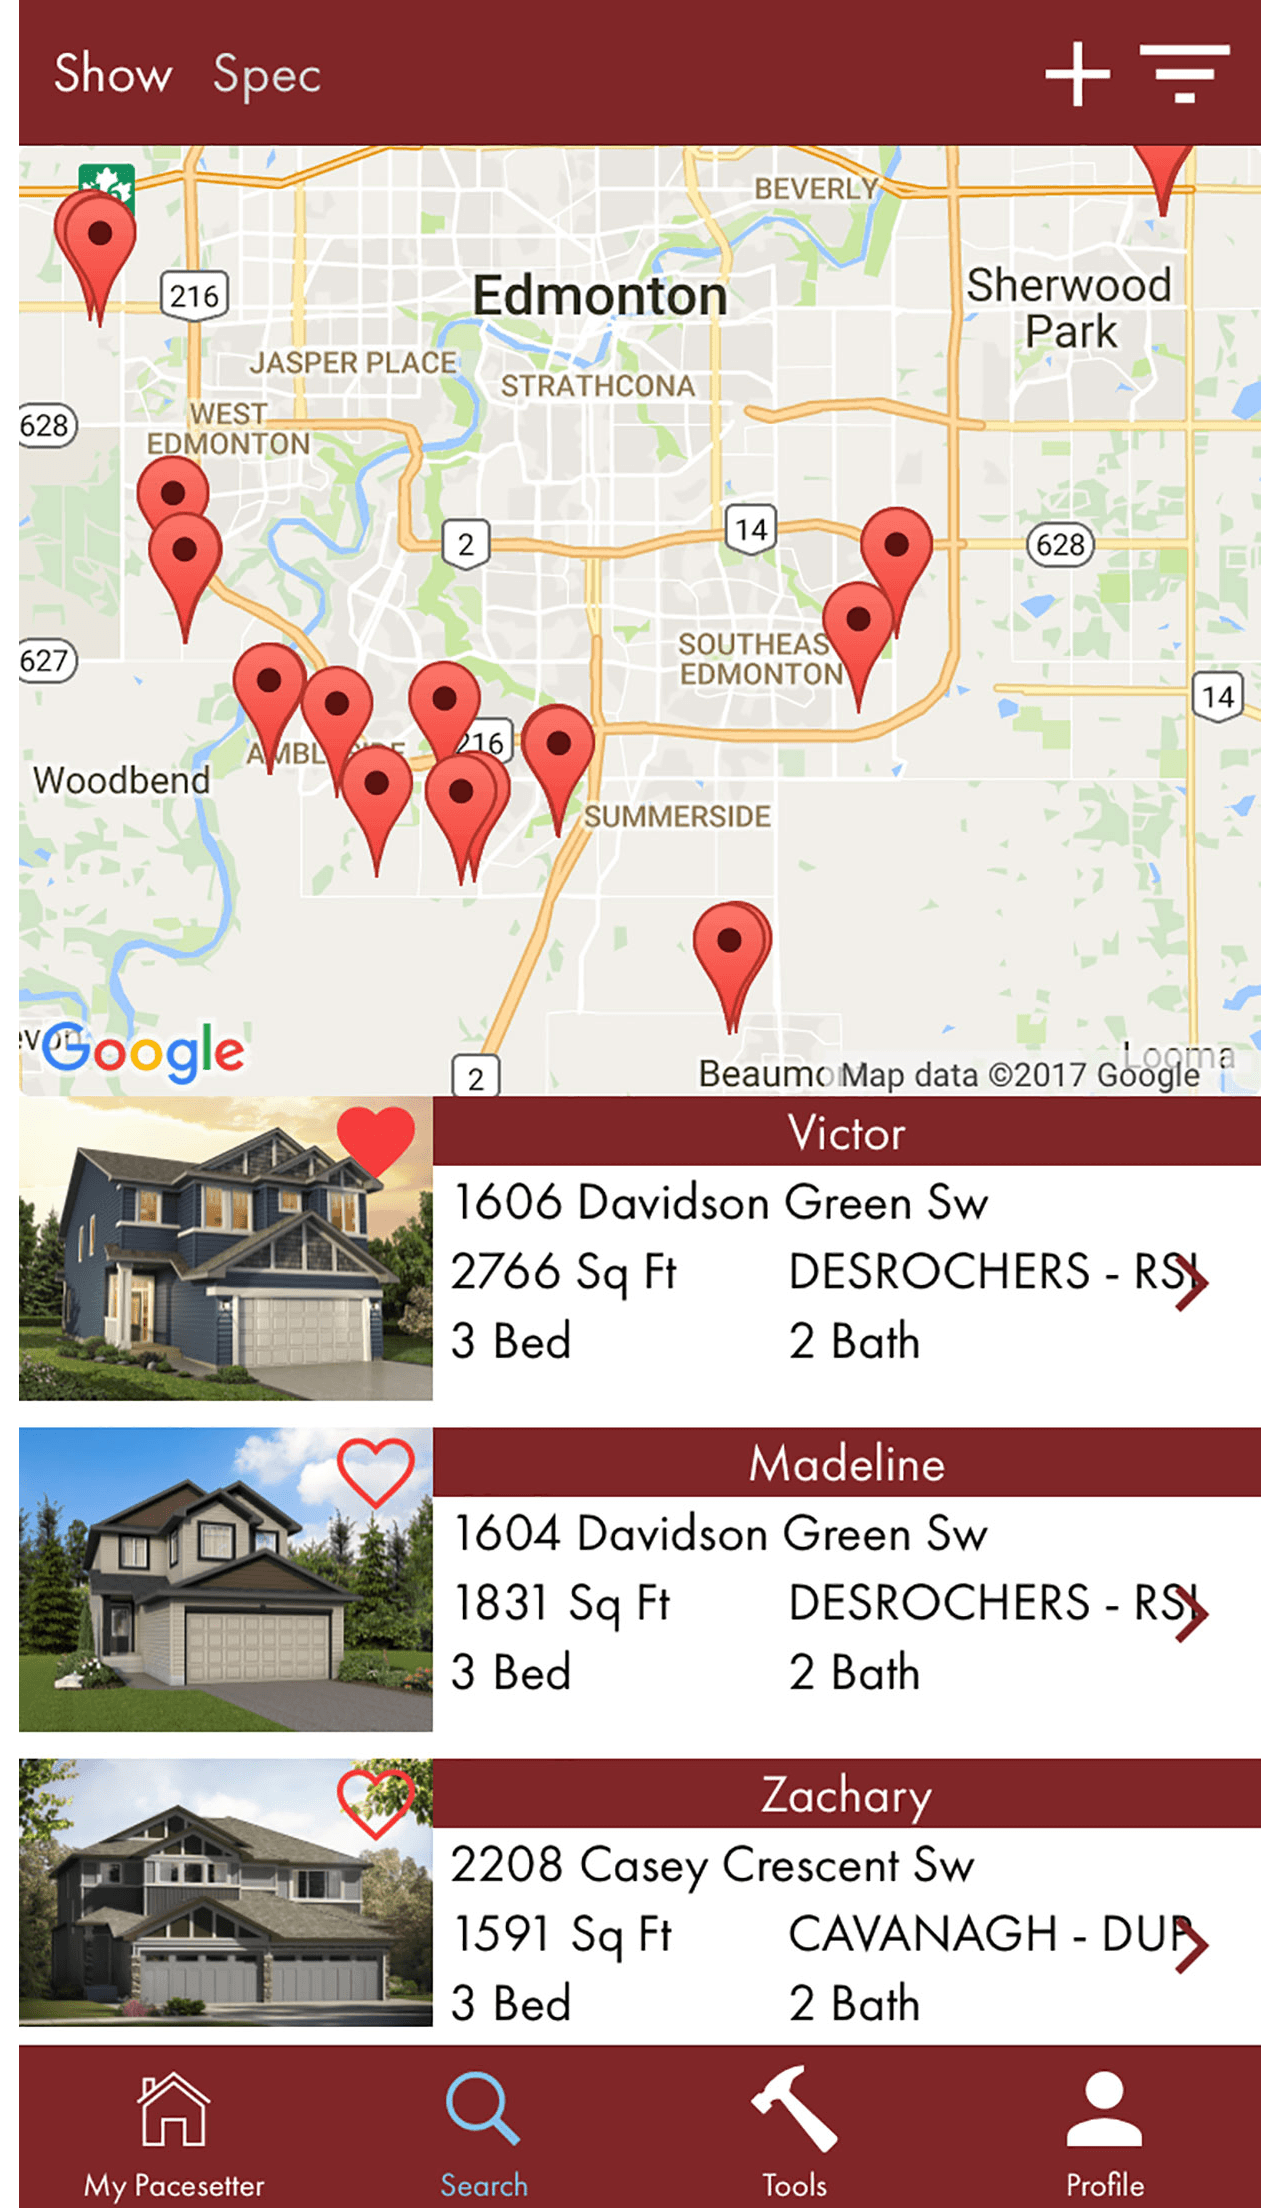 download-pacesetter-mobile-app-map-image.png